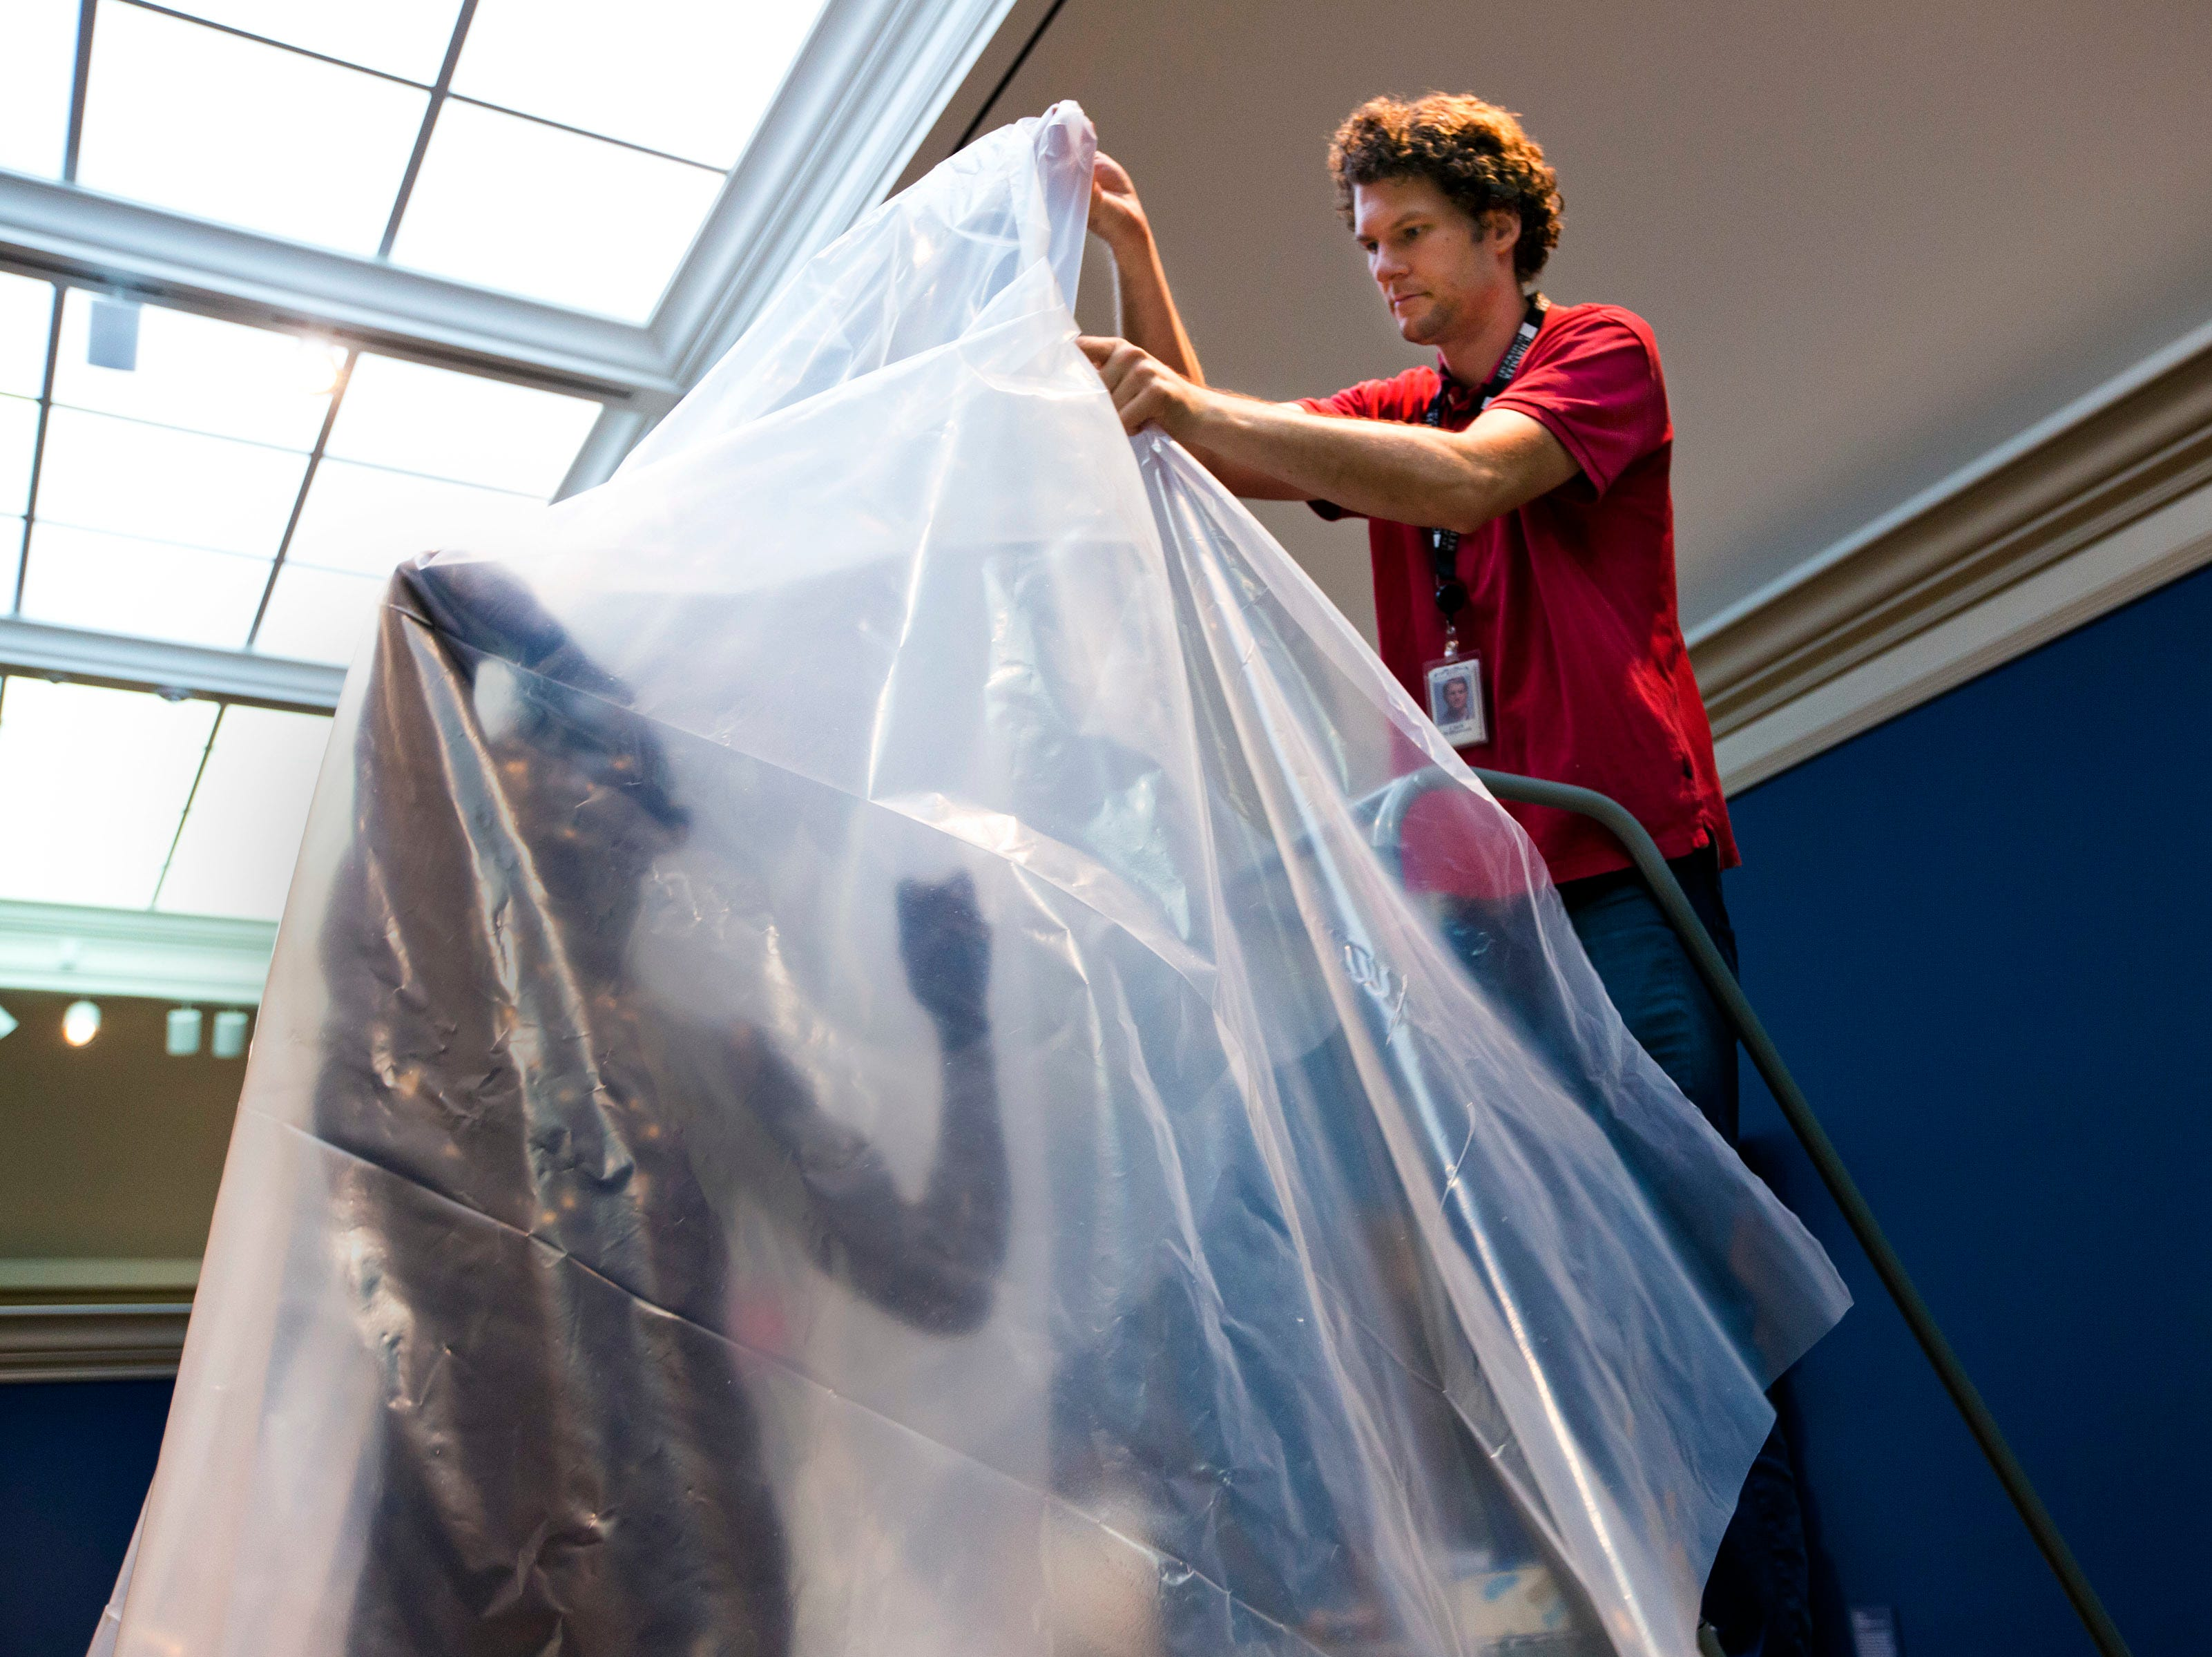 "Clark Williamson, exhibit designer, drapes the sculpture ""The Age of Bronze"" by Auguste Rodin at the Chrysler Museum of Art in Norfolk, Va., on Tuesday, Sept. 11, 2018. As category 4 Hurricane Florence approaches, staff members pull priceless paintings off the walls near windows and skylights on. Later on, the entrance to the museum will be sandbagged."